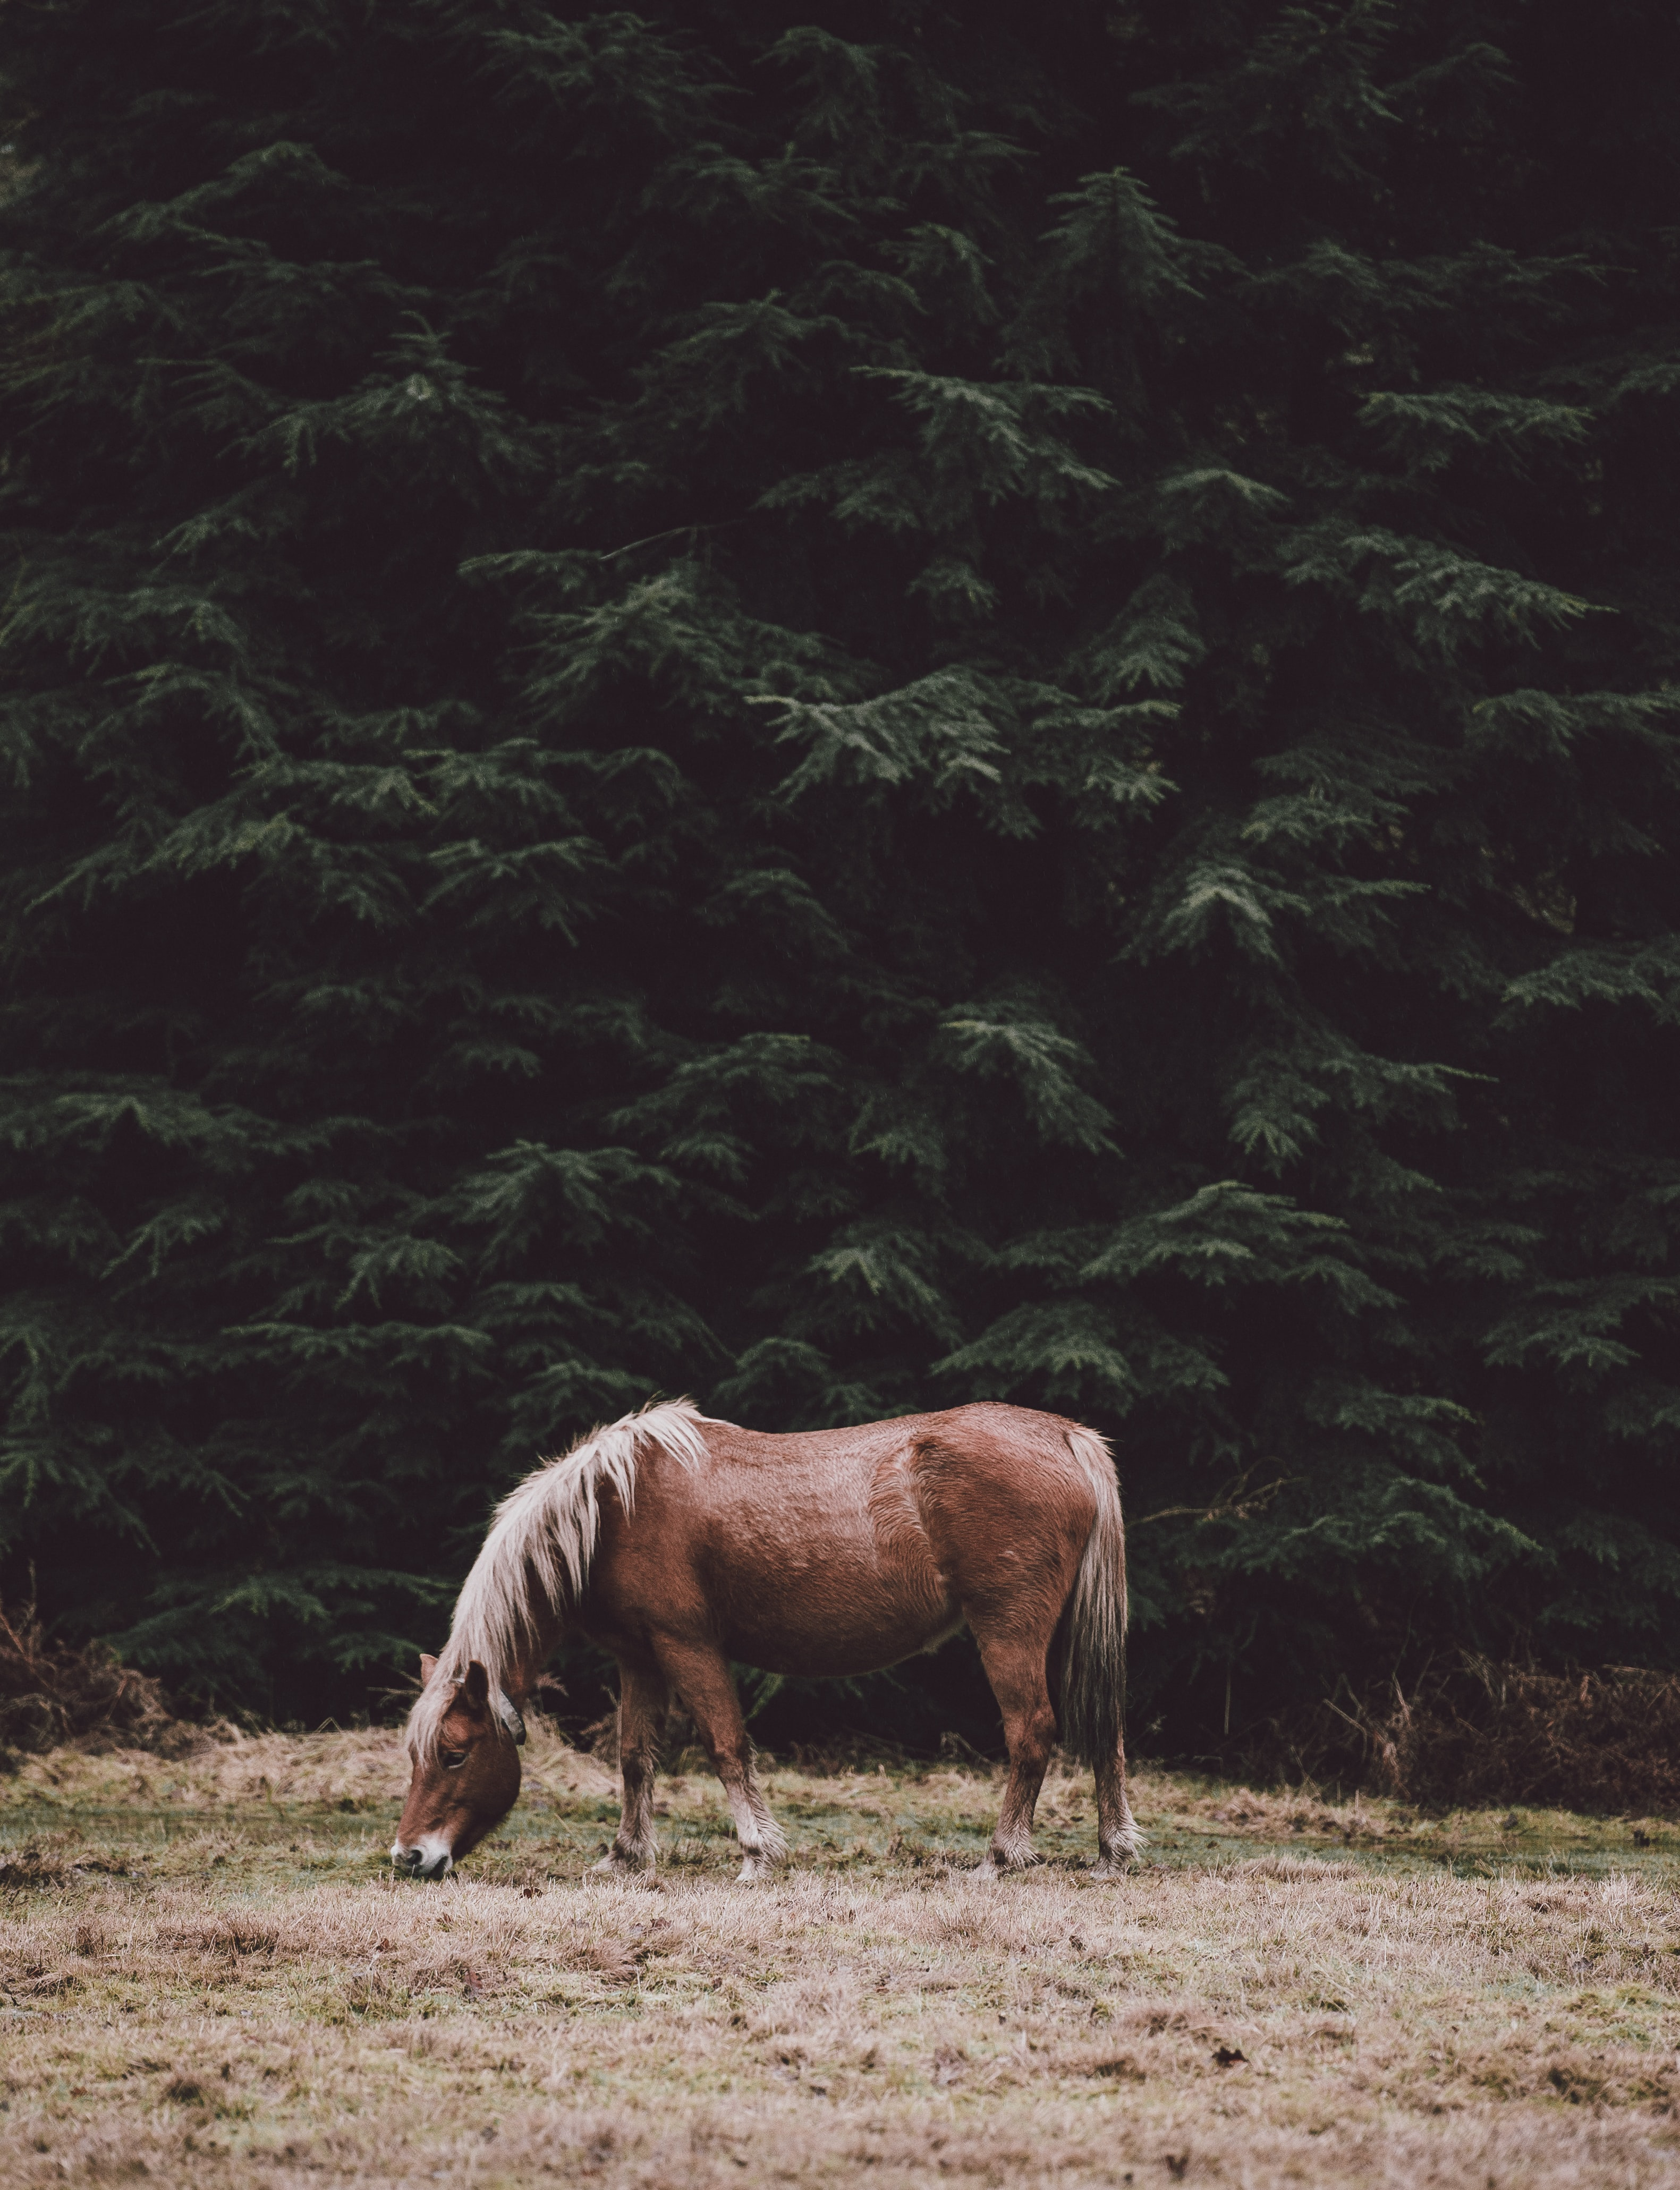 A chestnut horse grazing on dry grass near tall evergreen trees